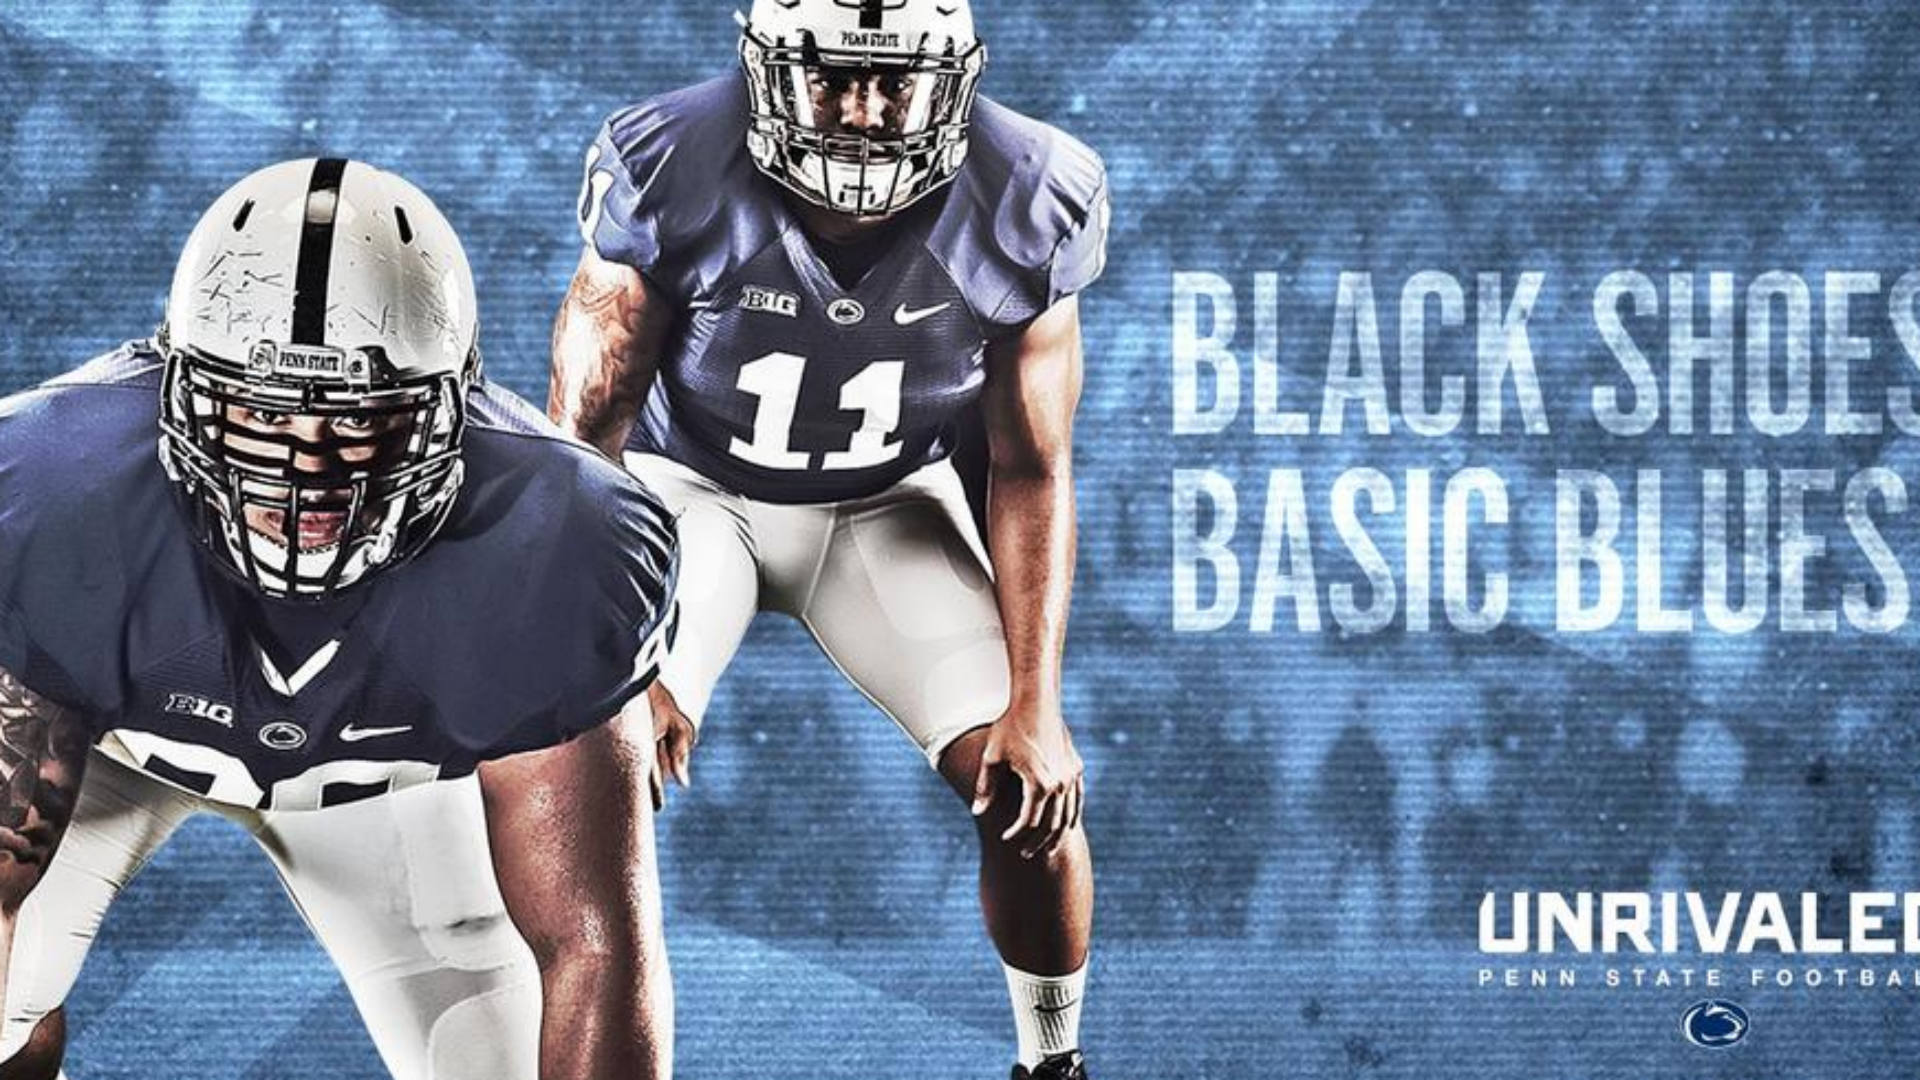 Download Free Penn State Wallpapers